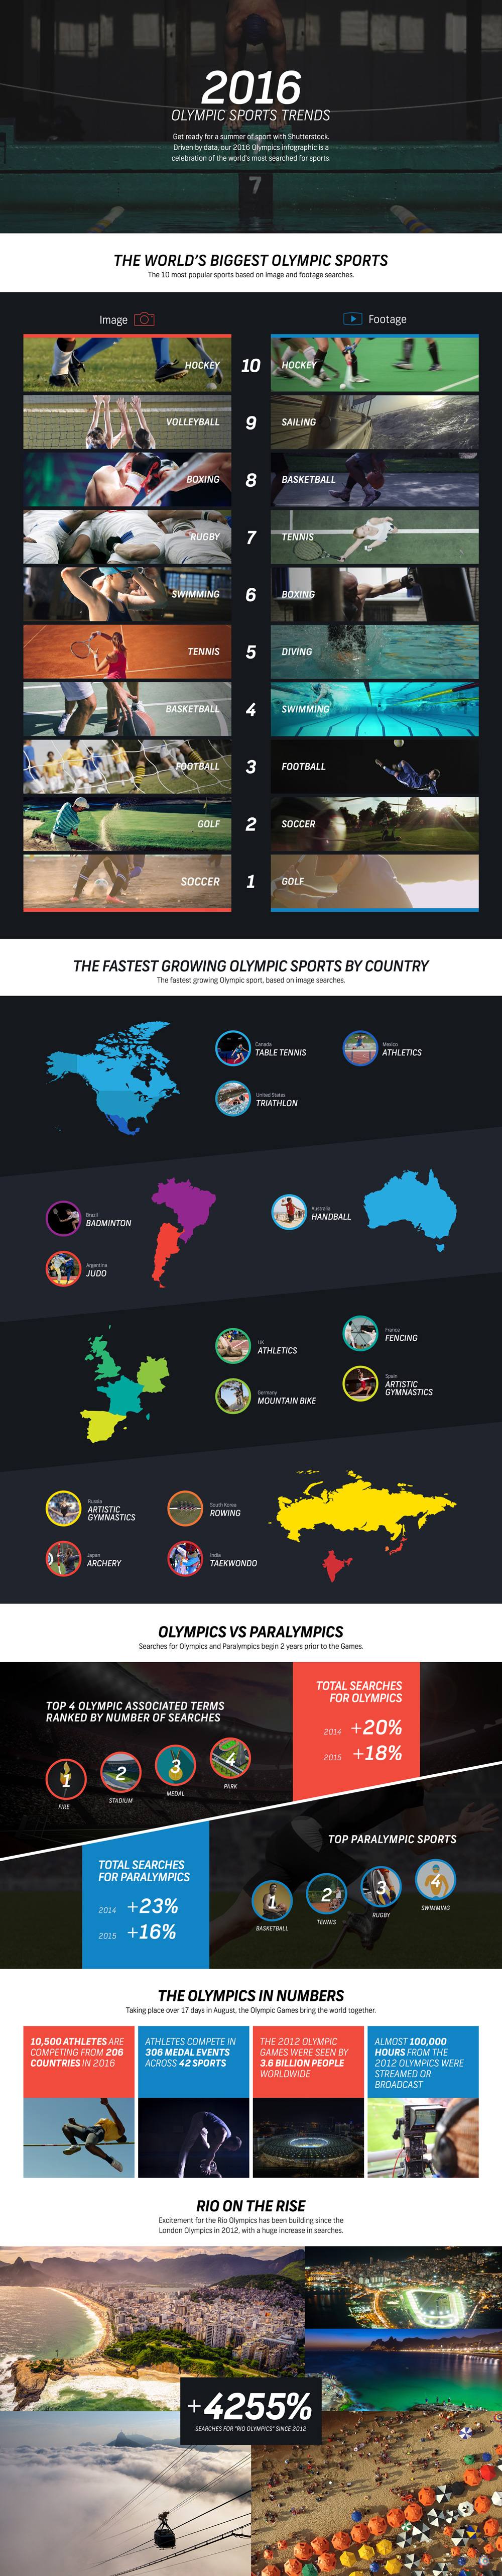 Explore The 2016 Olympic Sports Trends